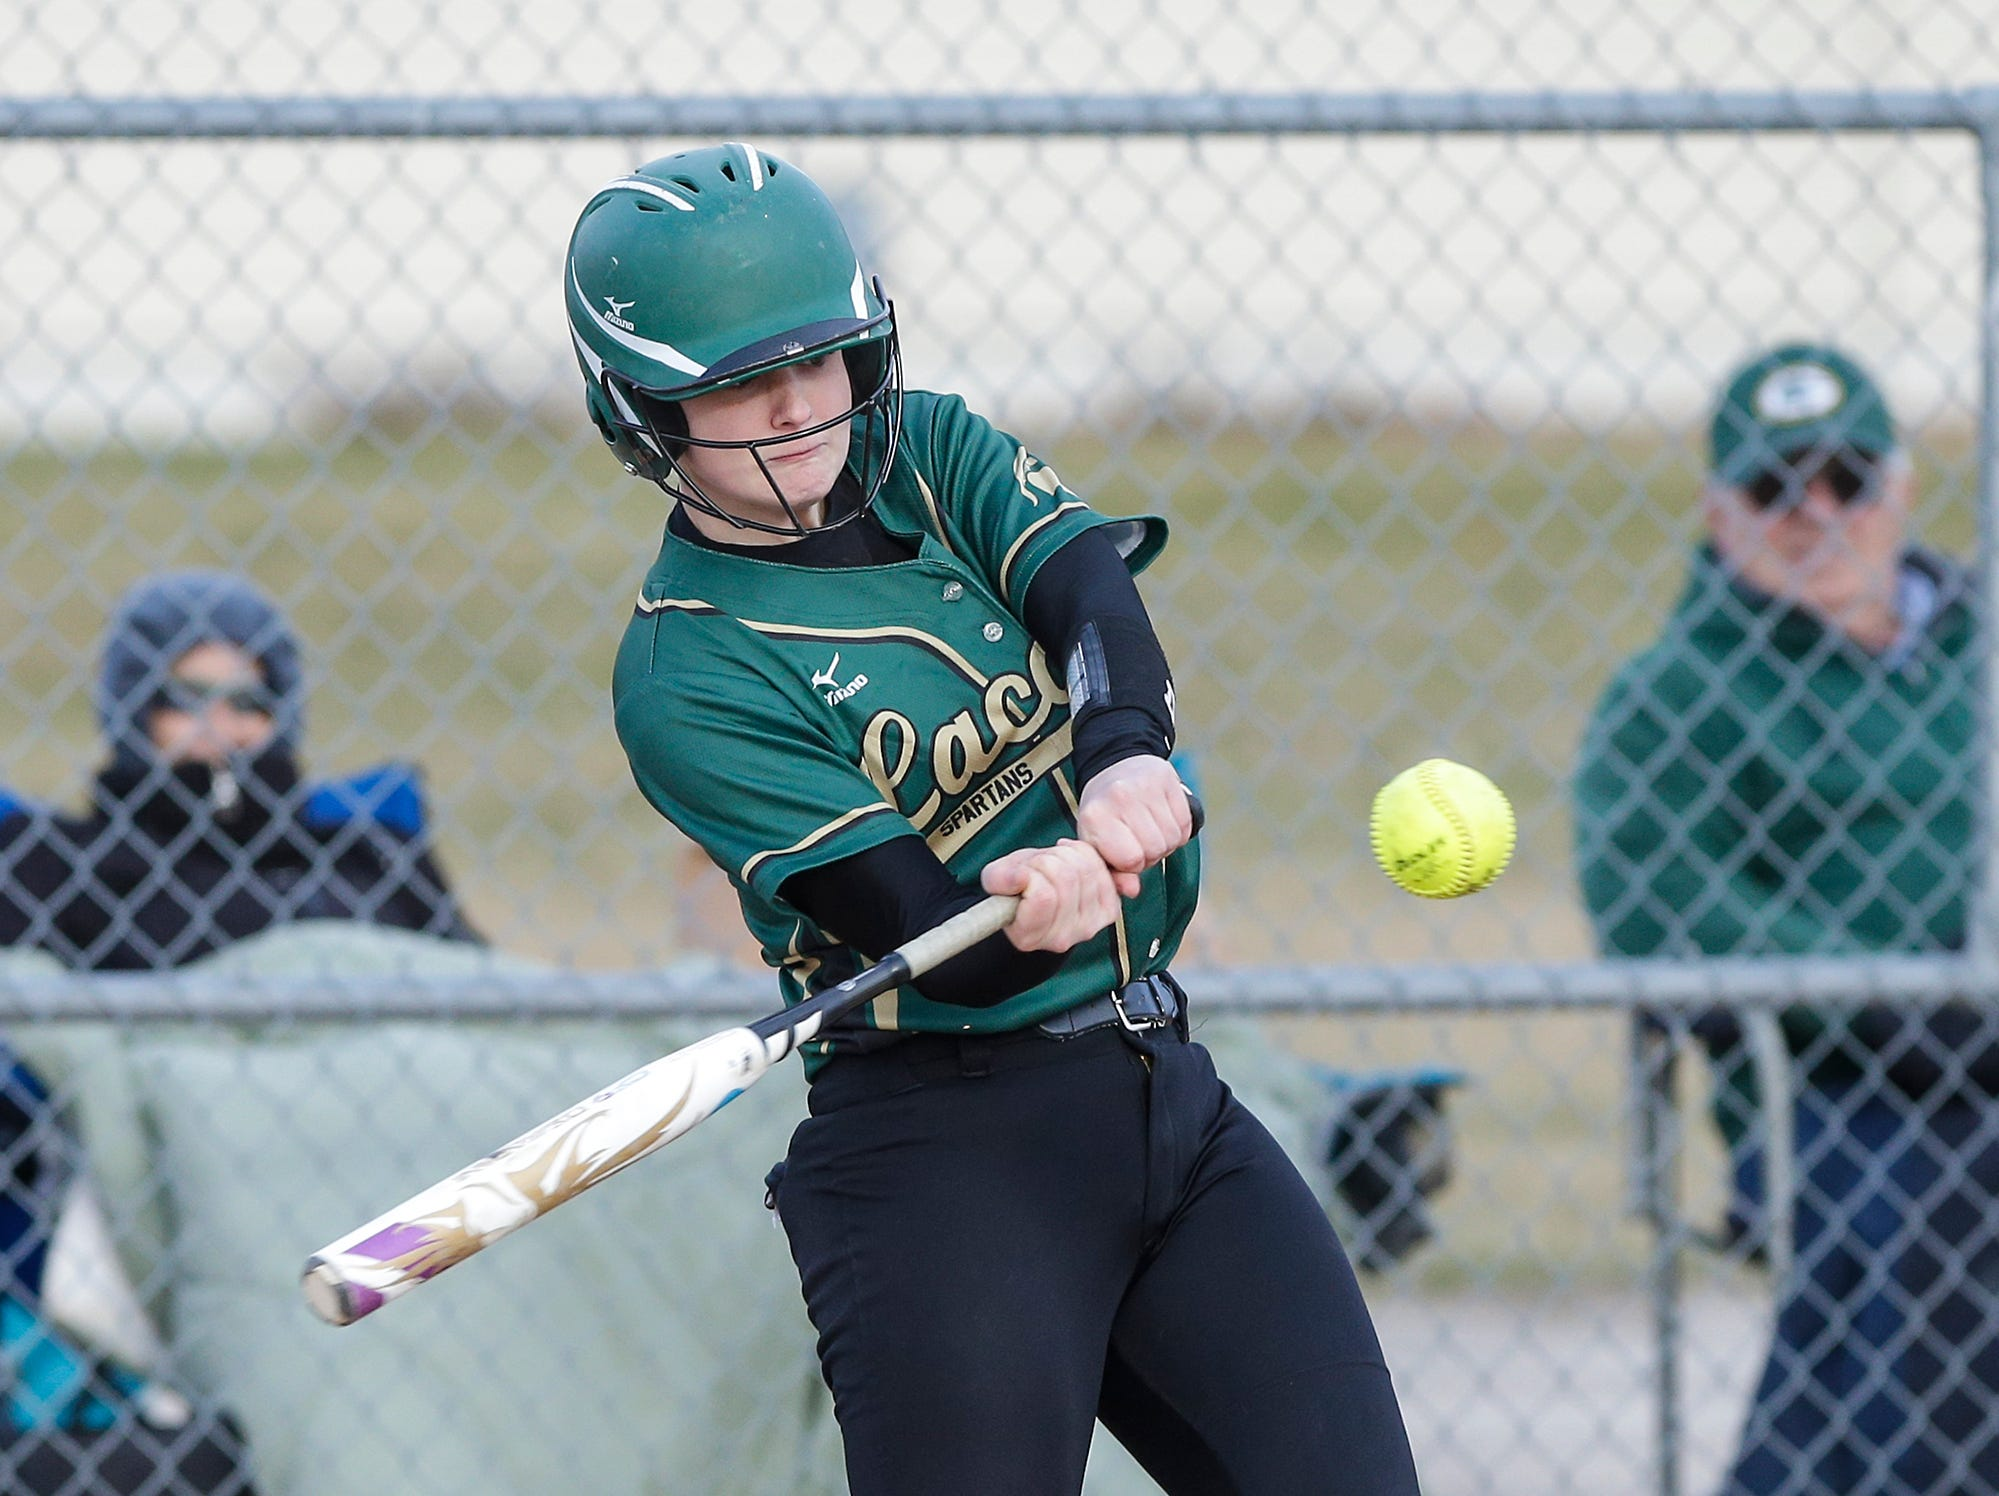 Laconia High School softball's Faith Weed swings at a pitch against Winnebago Lutheran Academy April 9, 2019 during their game in Fond du Lac, Wis. Laconia won the game 25-9. Doug Raflik/USA TODAY NETWORK-Wisconsin